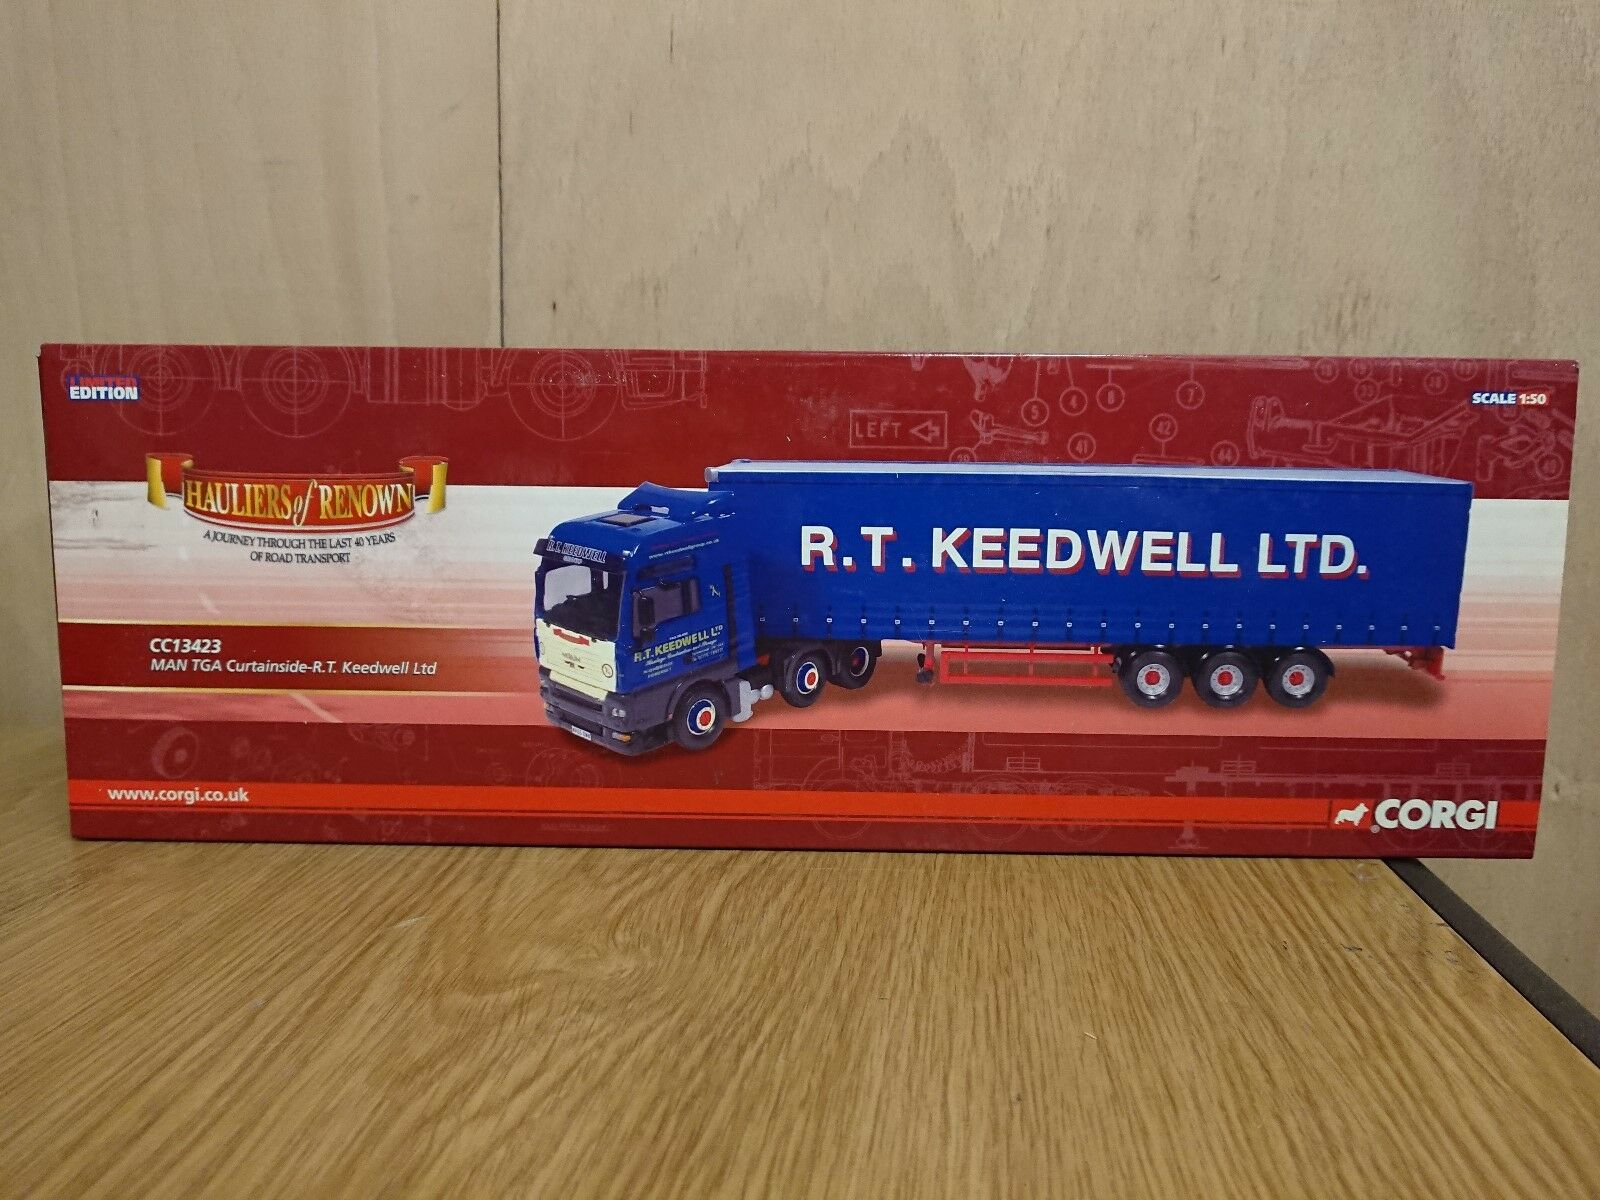 Corgi CC13423 MAN TGA Curtainside R.T. Keedwell Ltd Edition No 0039 of ONLY 1210